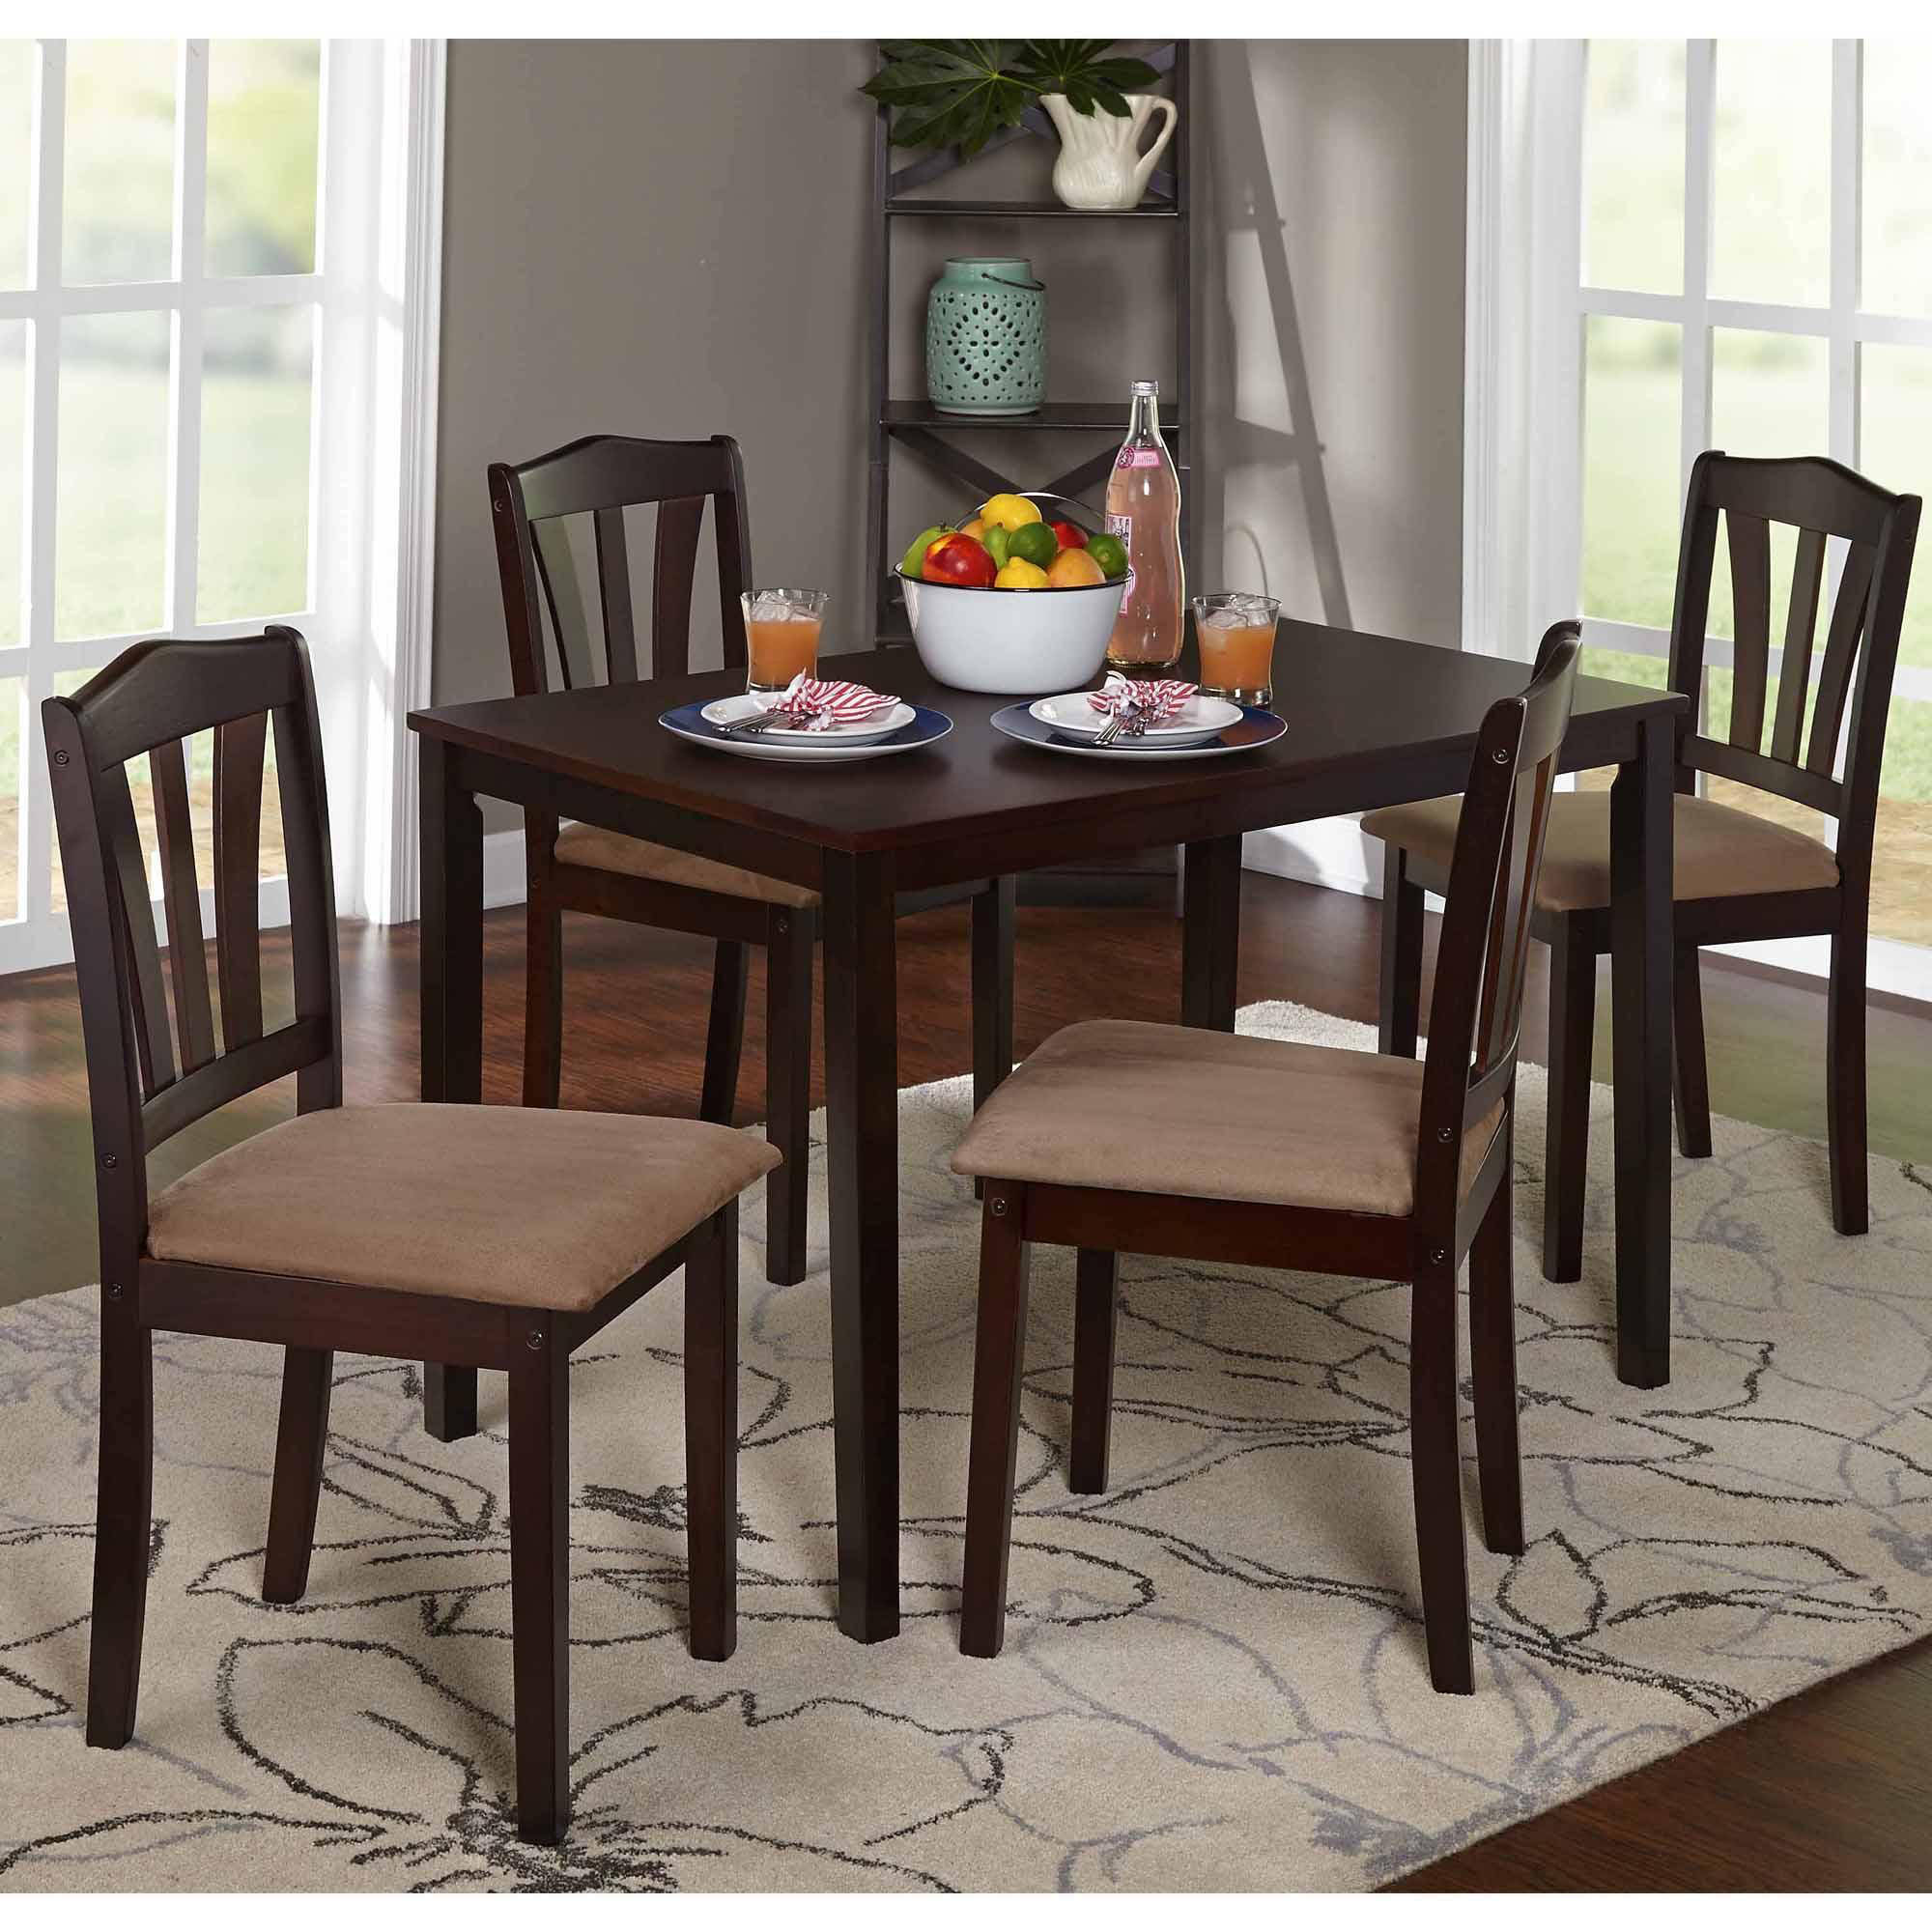 Details about 5 Piece Dining Set Wood Breakfast Furniture 4 Chairs and  Table Kitchen Dinette